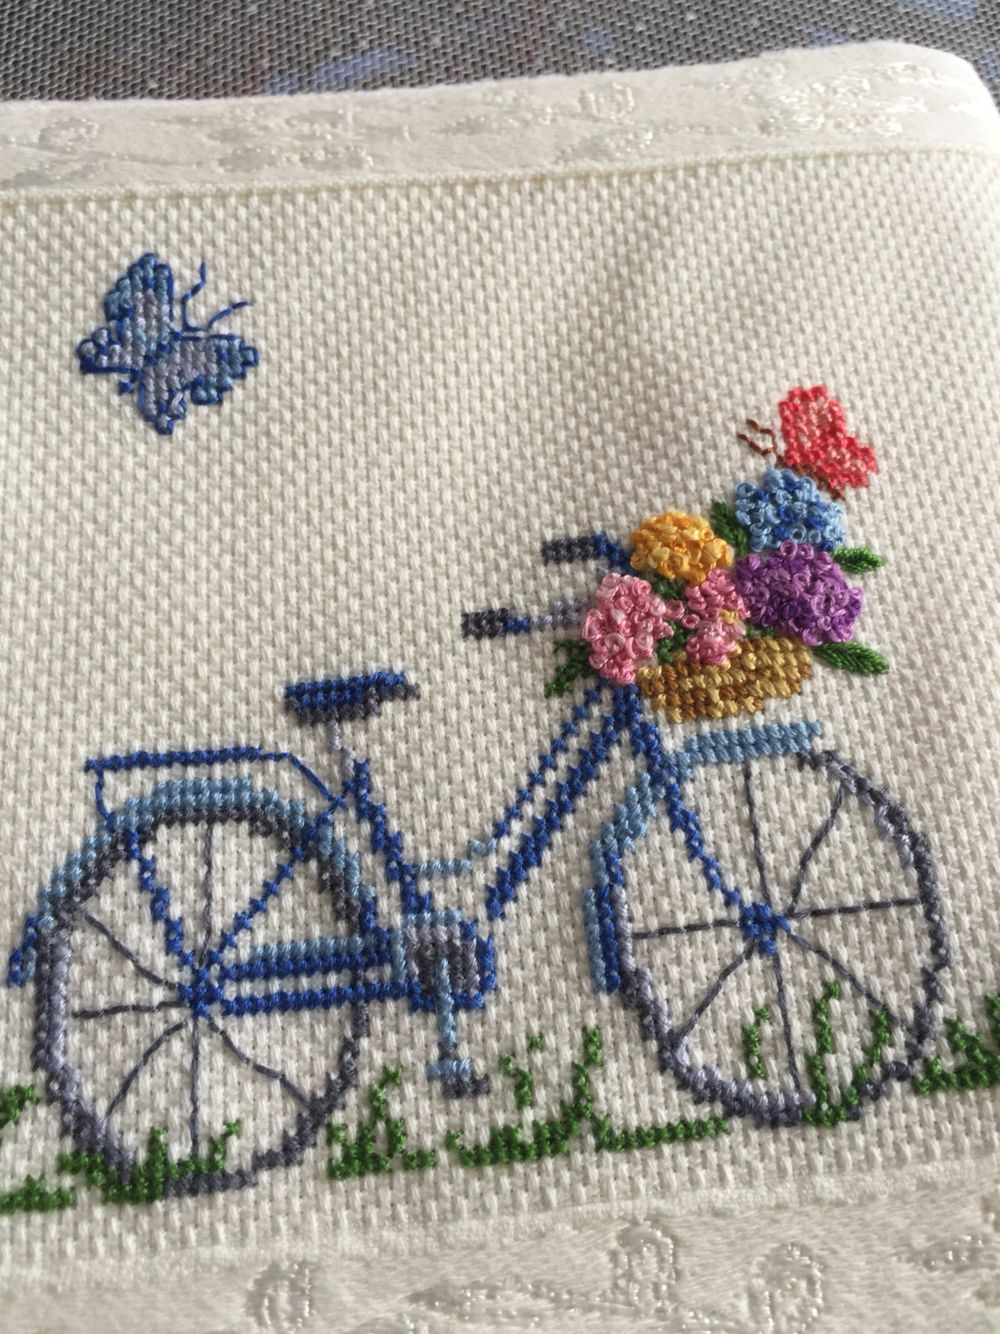 Pin by sudha raghavendran on cross stitch pinterest cross stitch